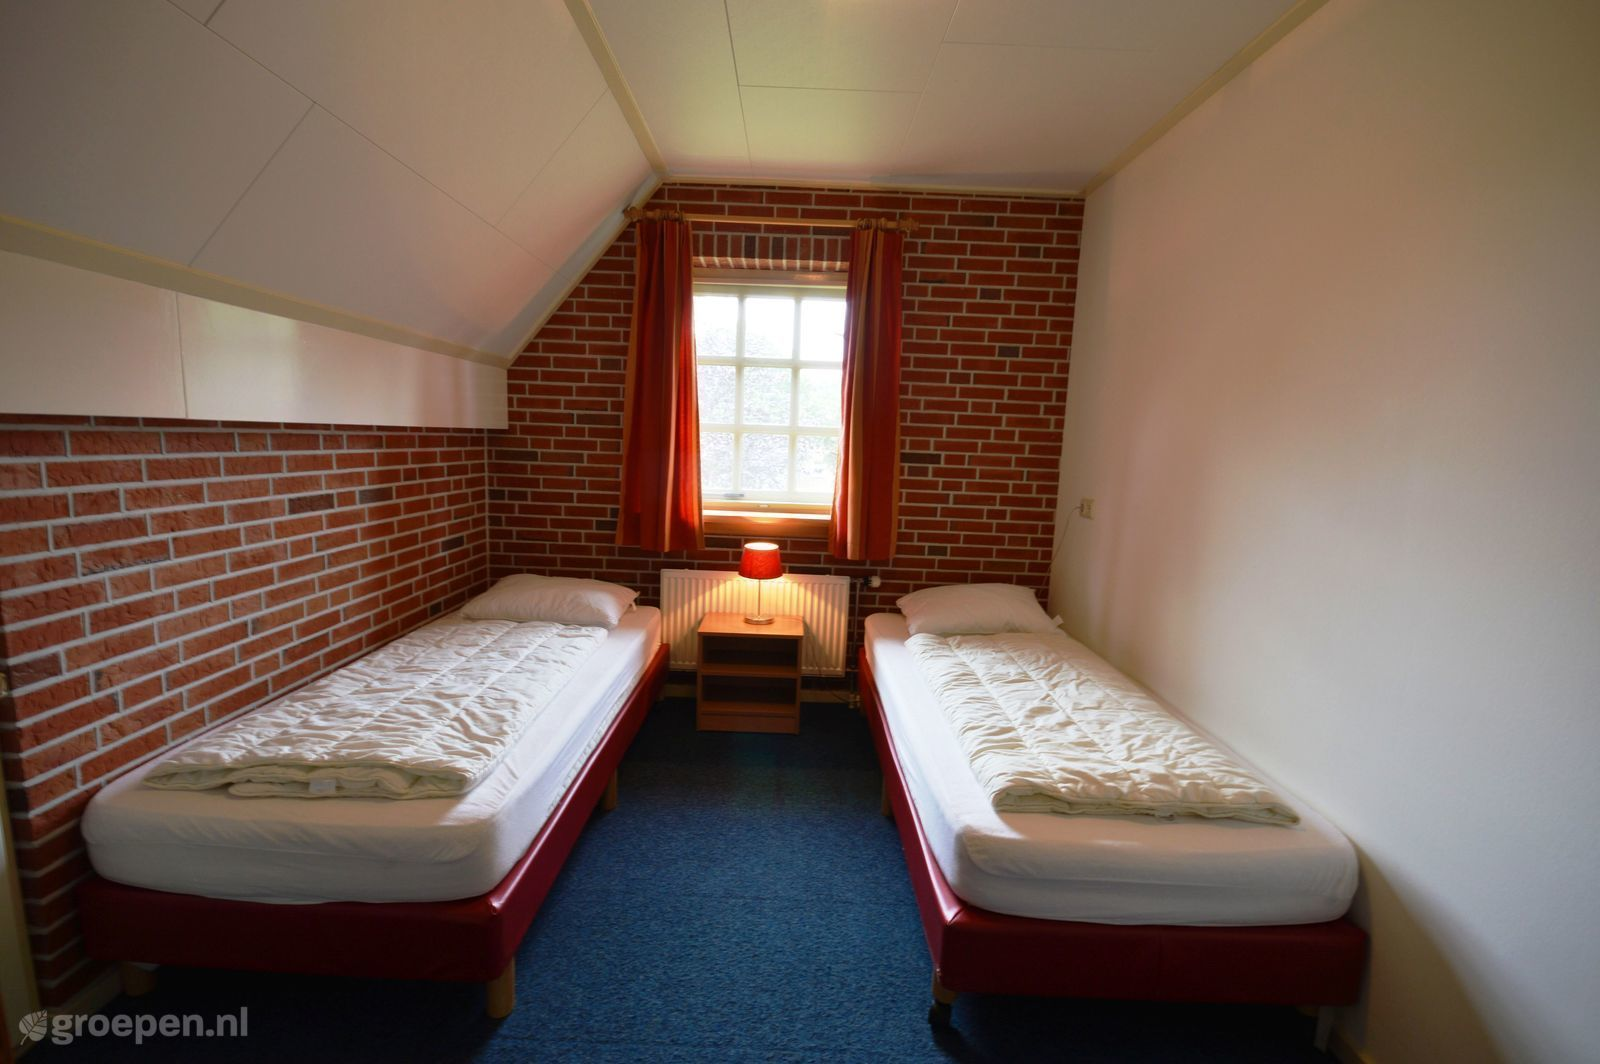 Group accommodation Ambt-Delden